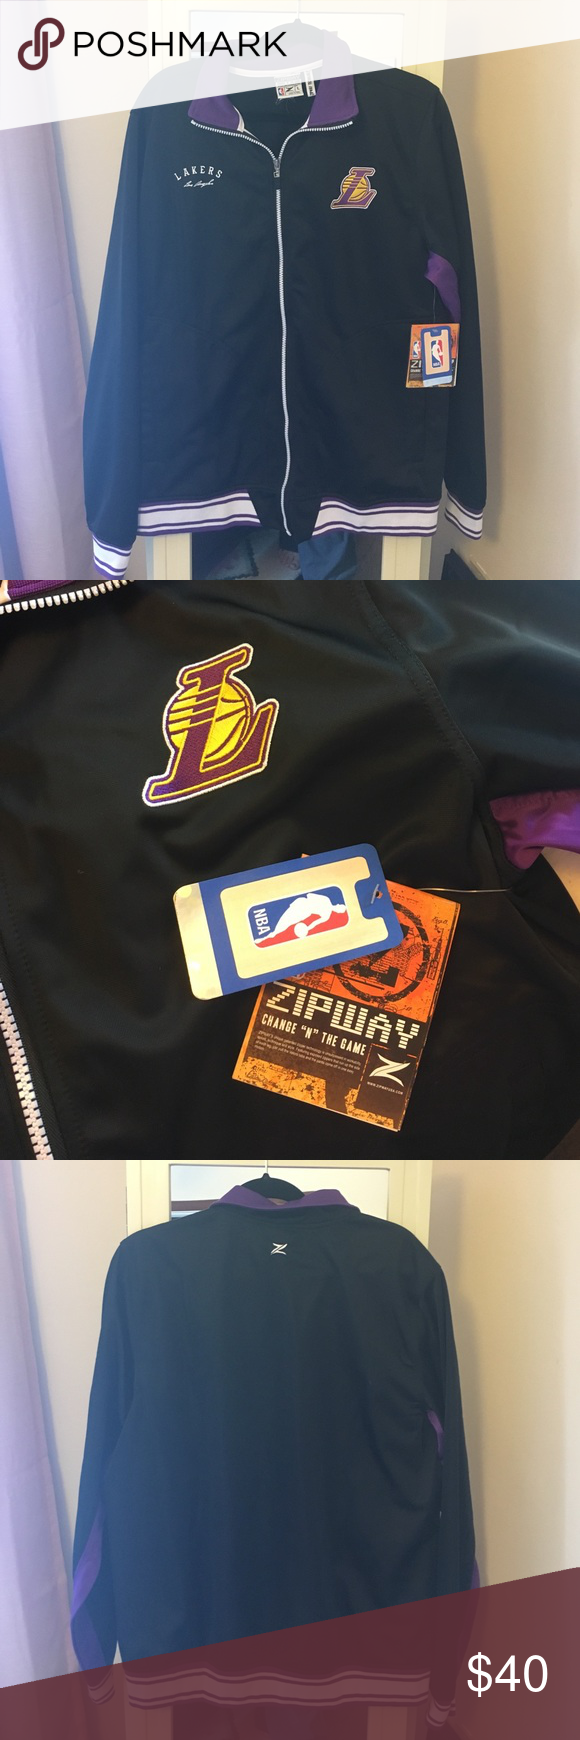 NWT Men's Lakers Zipway Jacket Brand New Men's Official NBA Apparel Lakers Zipway jacket. Never been worn, purchased from the NBA online store. NBA Jackets & Coats Lightweight & Shirt Jackets